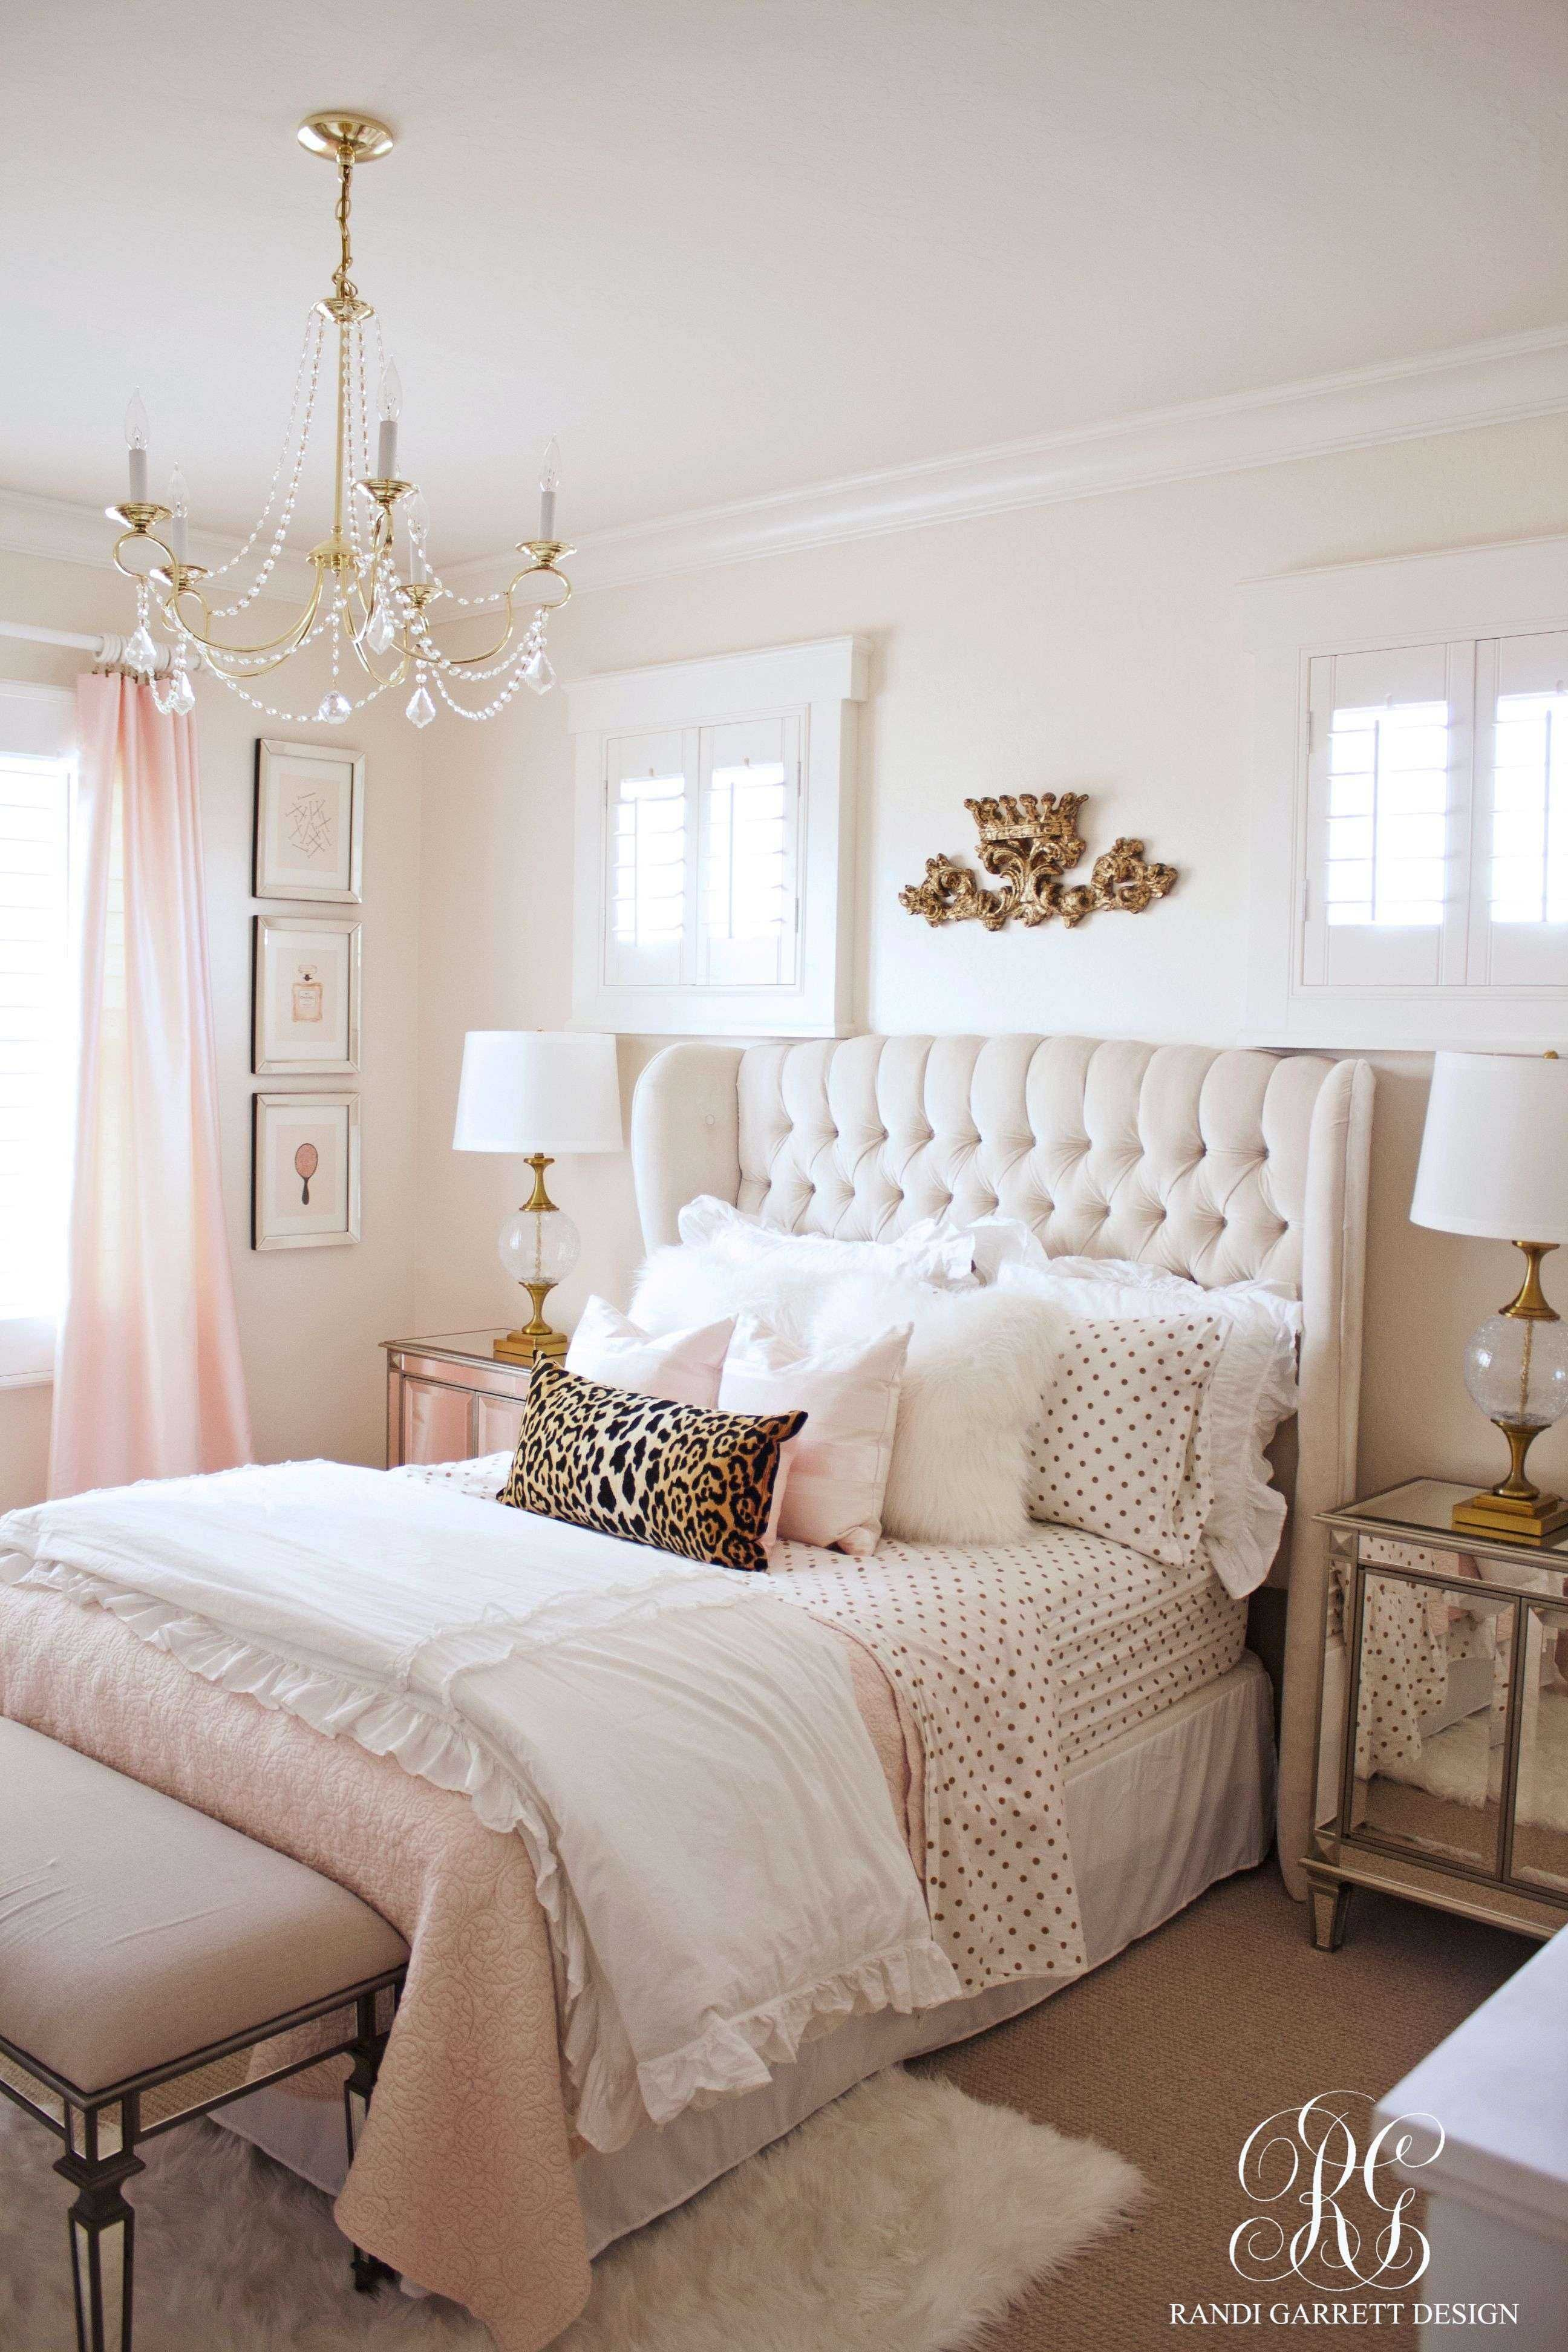 Shabby chic bedroom decorating ideas on a budget luxury ... on Luxury Bedroom Ideas On A Budget  id=16249